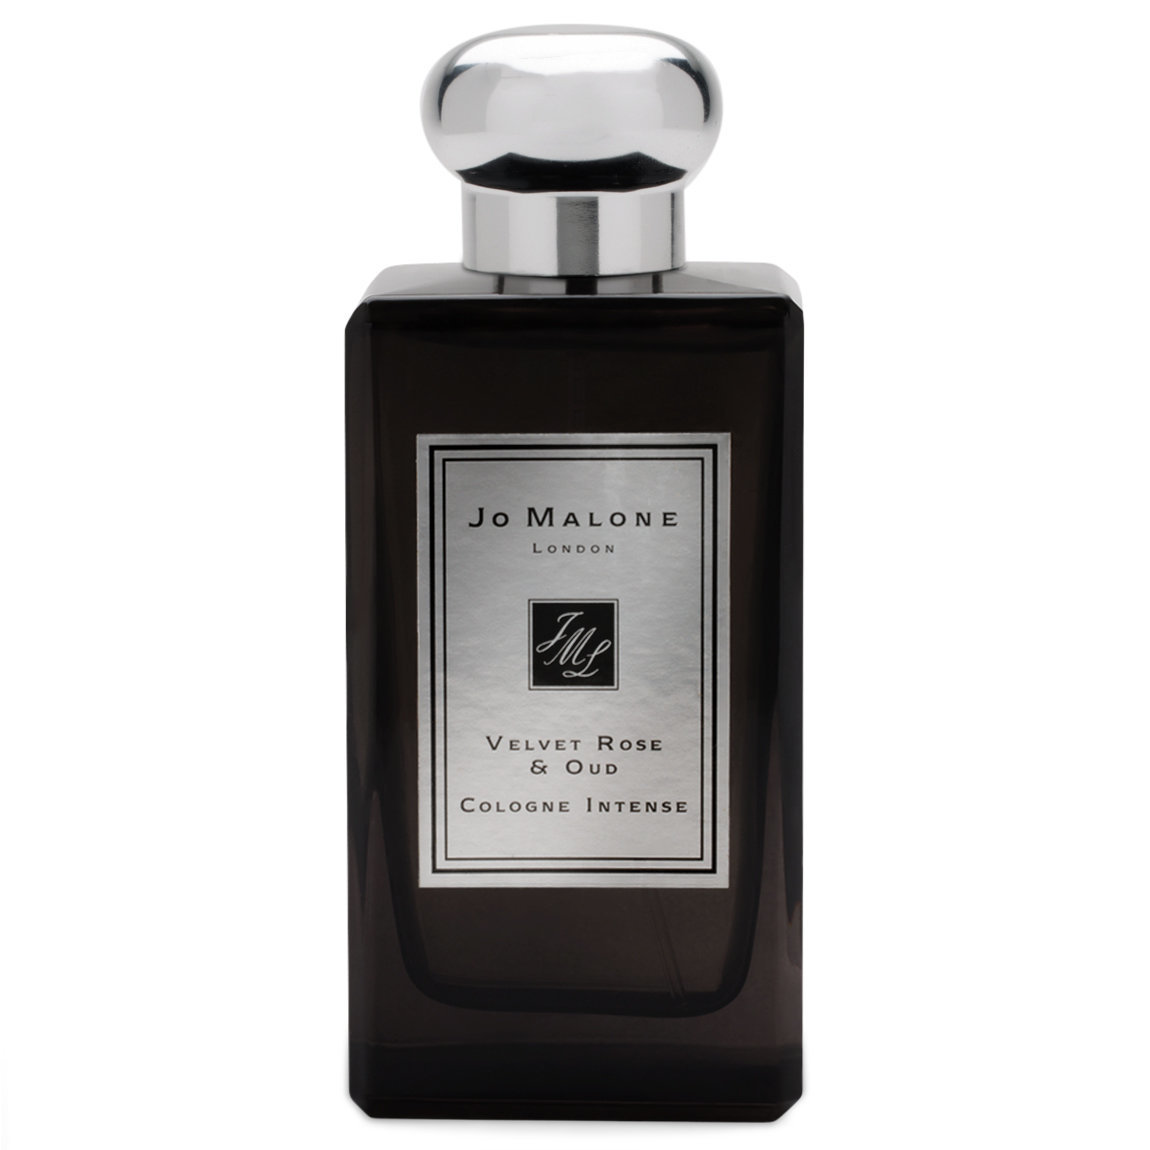 Jo Malone London Velvet Rose & Oud Cologne Intense 100 ml product smear.